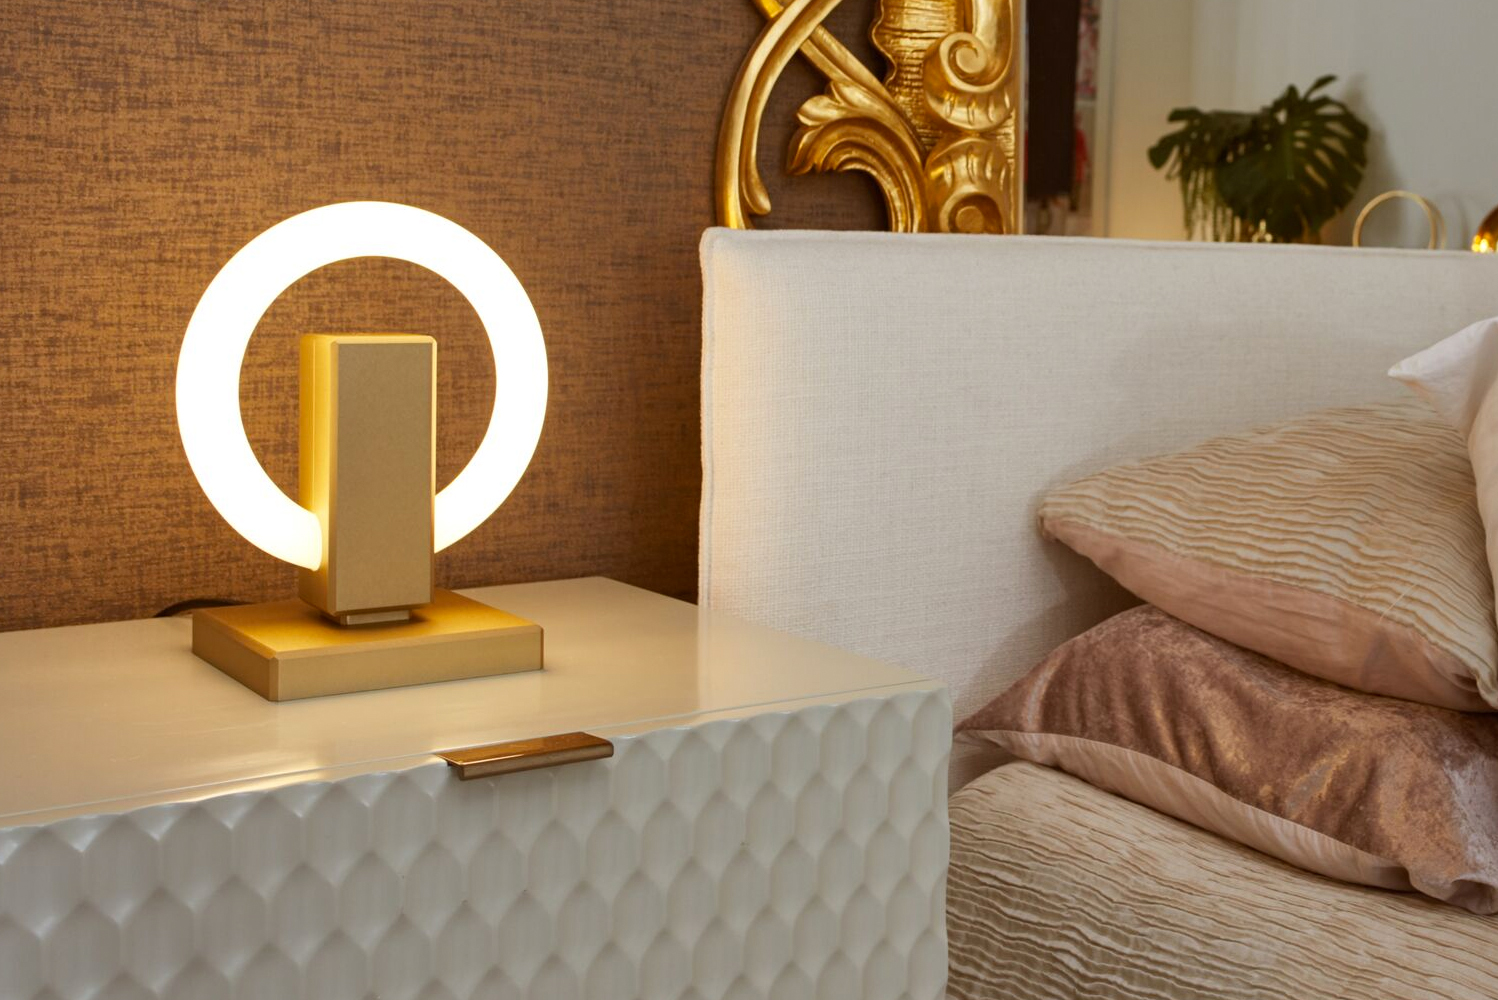 Just like its predecessor (the Olah wall sconce), the Olah table lamp illuminates on a ring without visible fasteners, delivering a clean aesthetic.